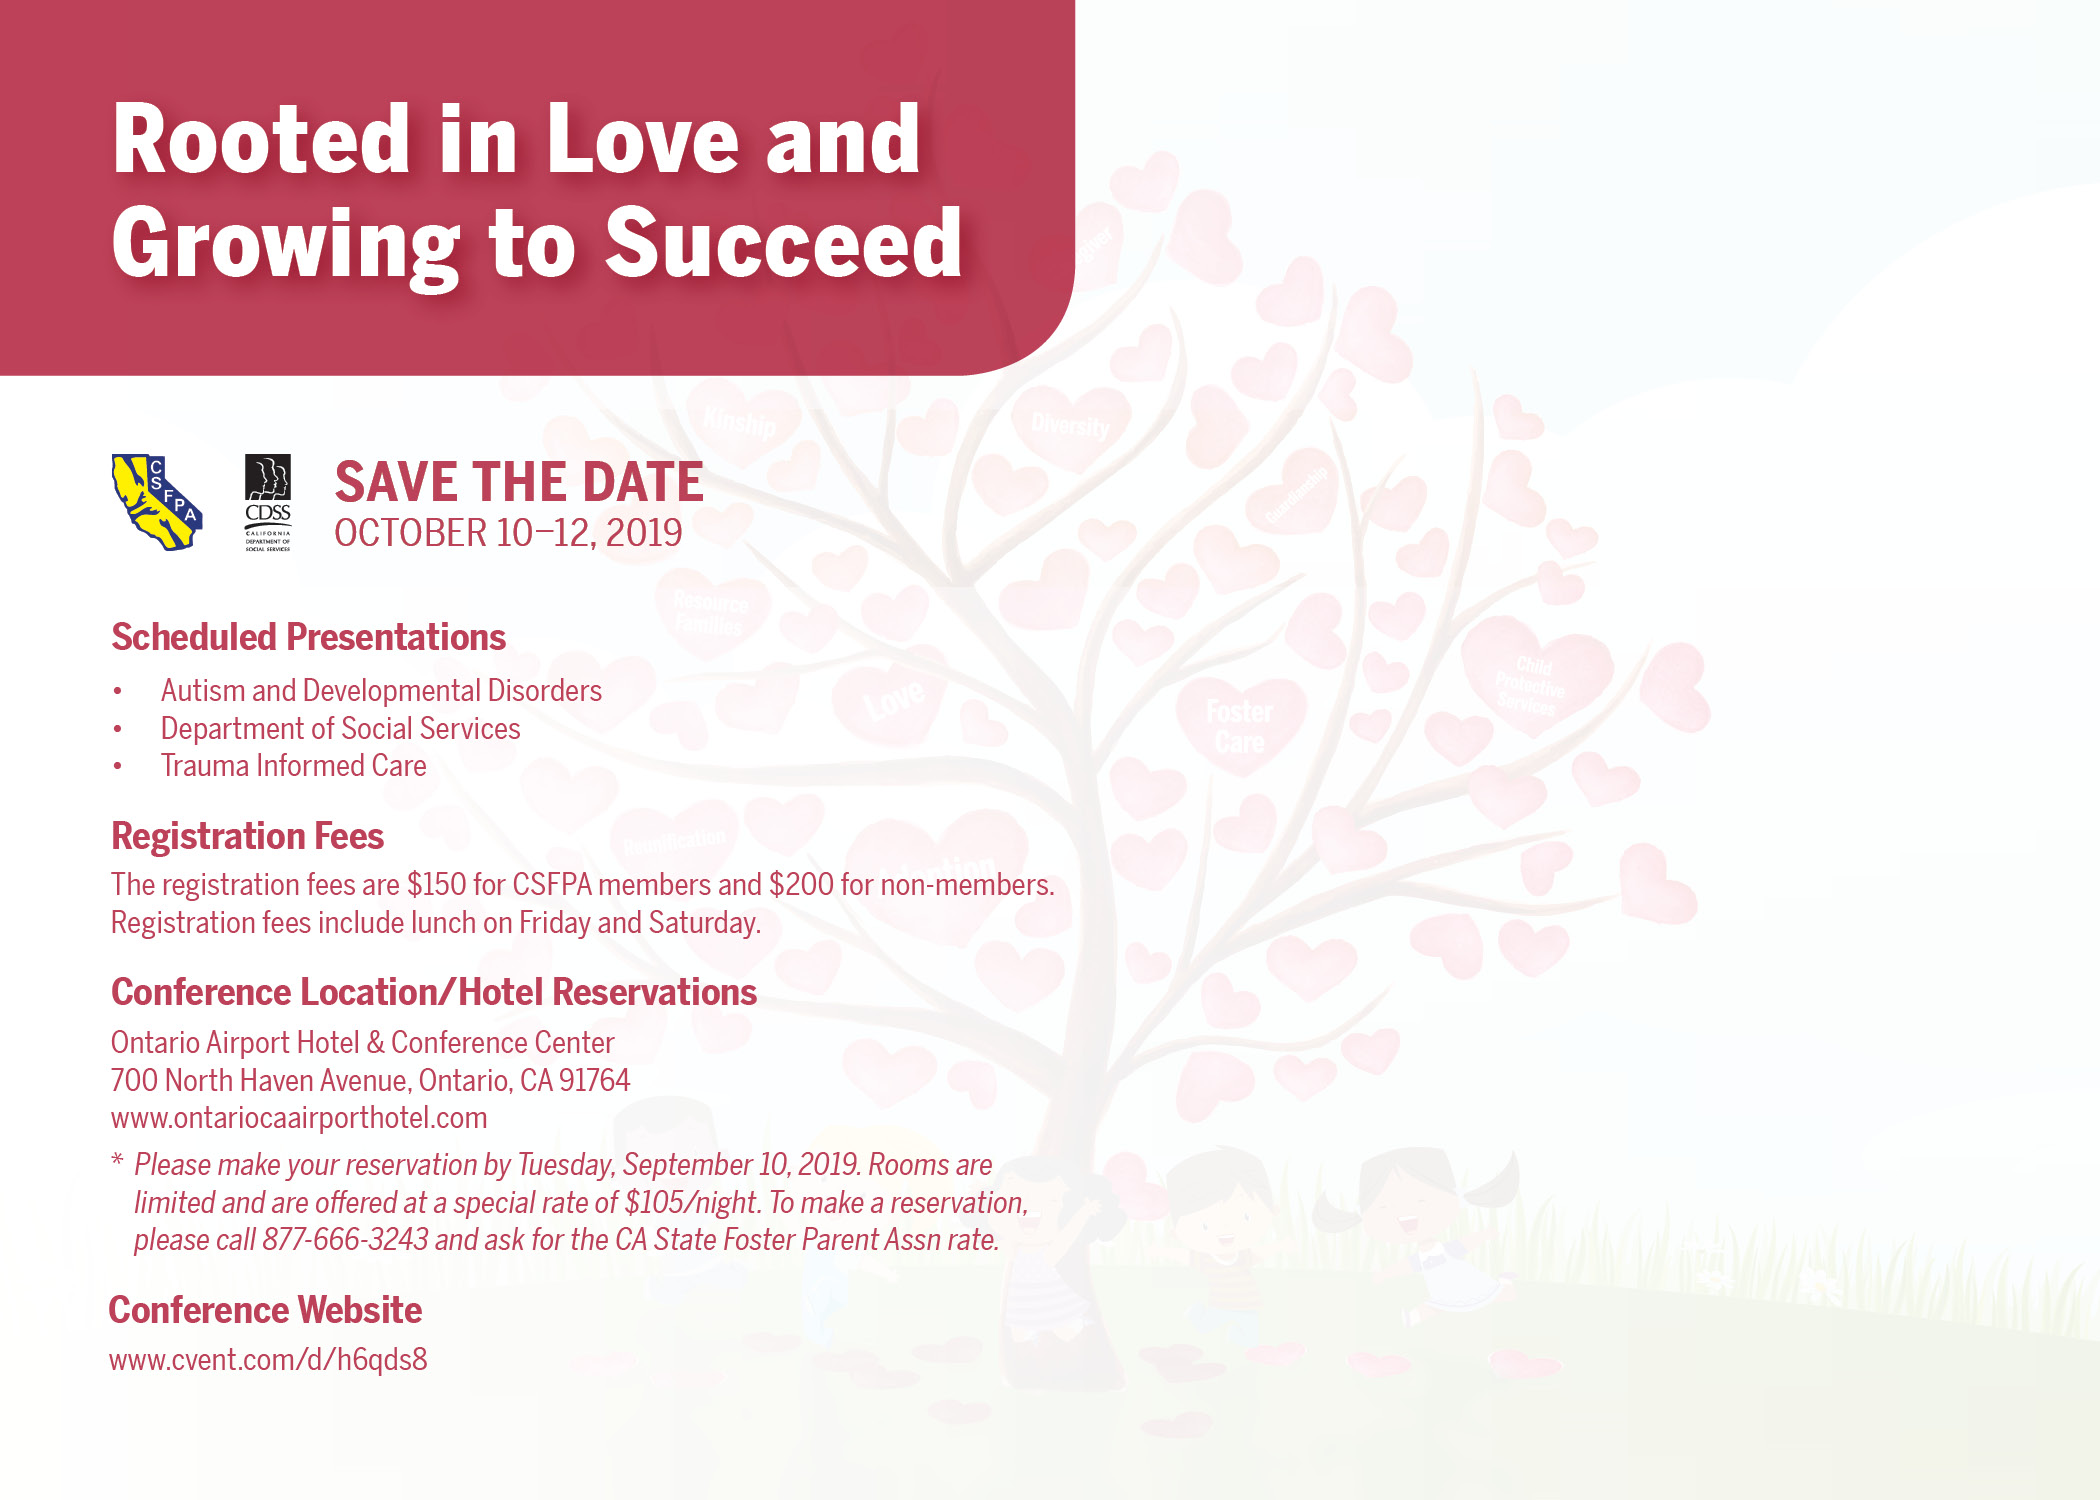 Rooted in Love and Growing to Succeed - Registration fees are $150 for CSFPA members and $200 for non-members.  Scheduled presentations include:  Autism and Developmental Disorders; Department of Social Services; Trauma-Informed Care